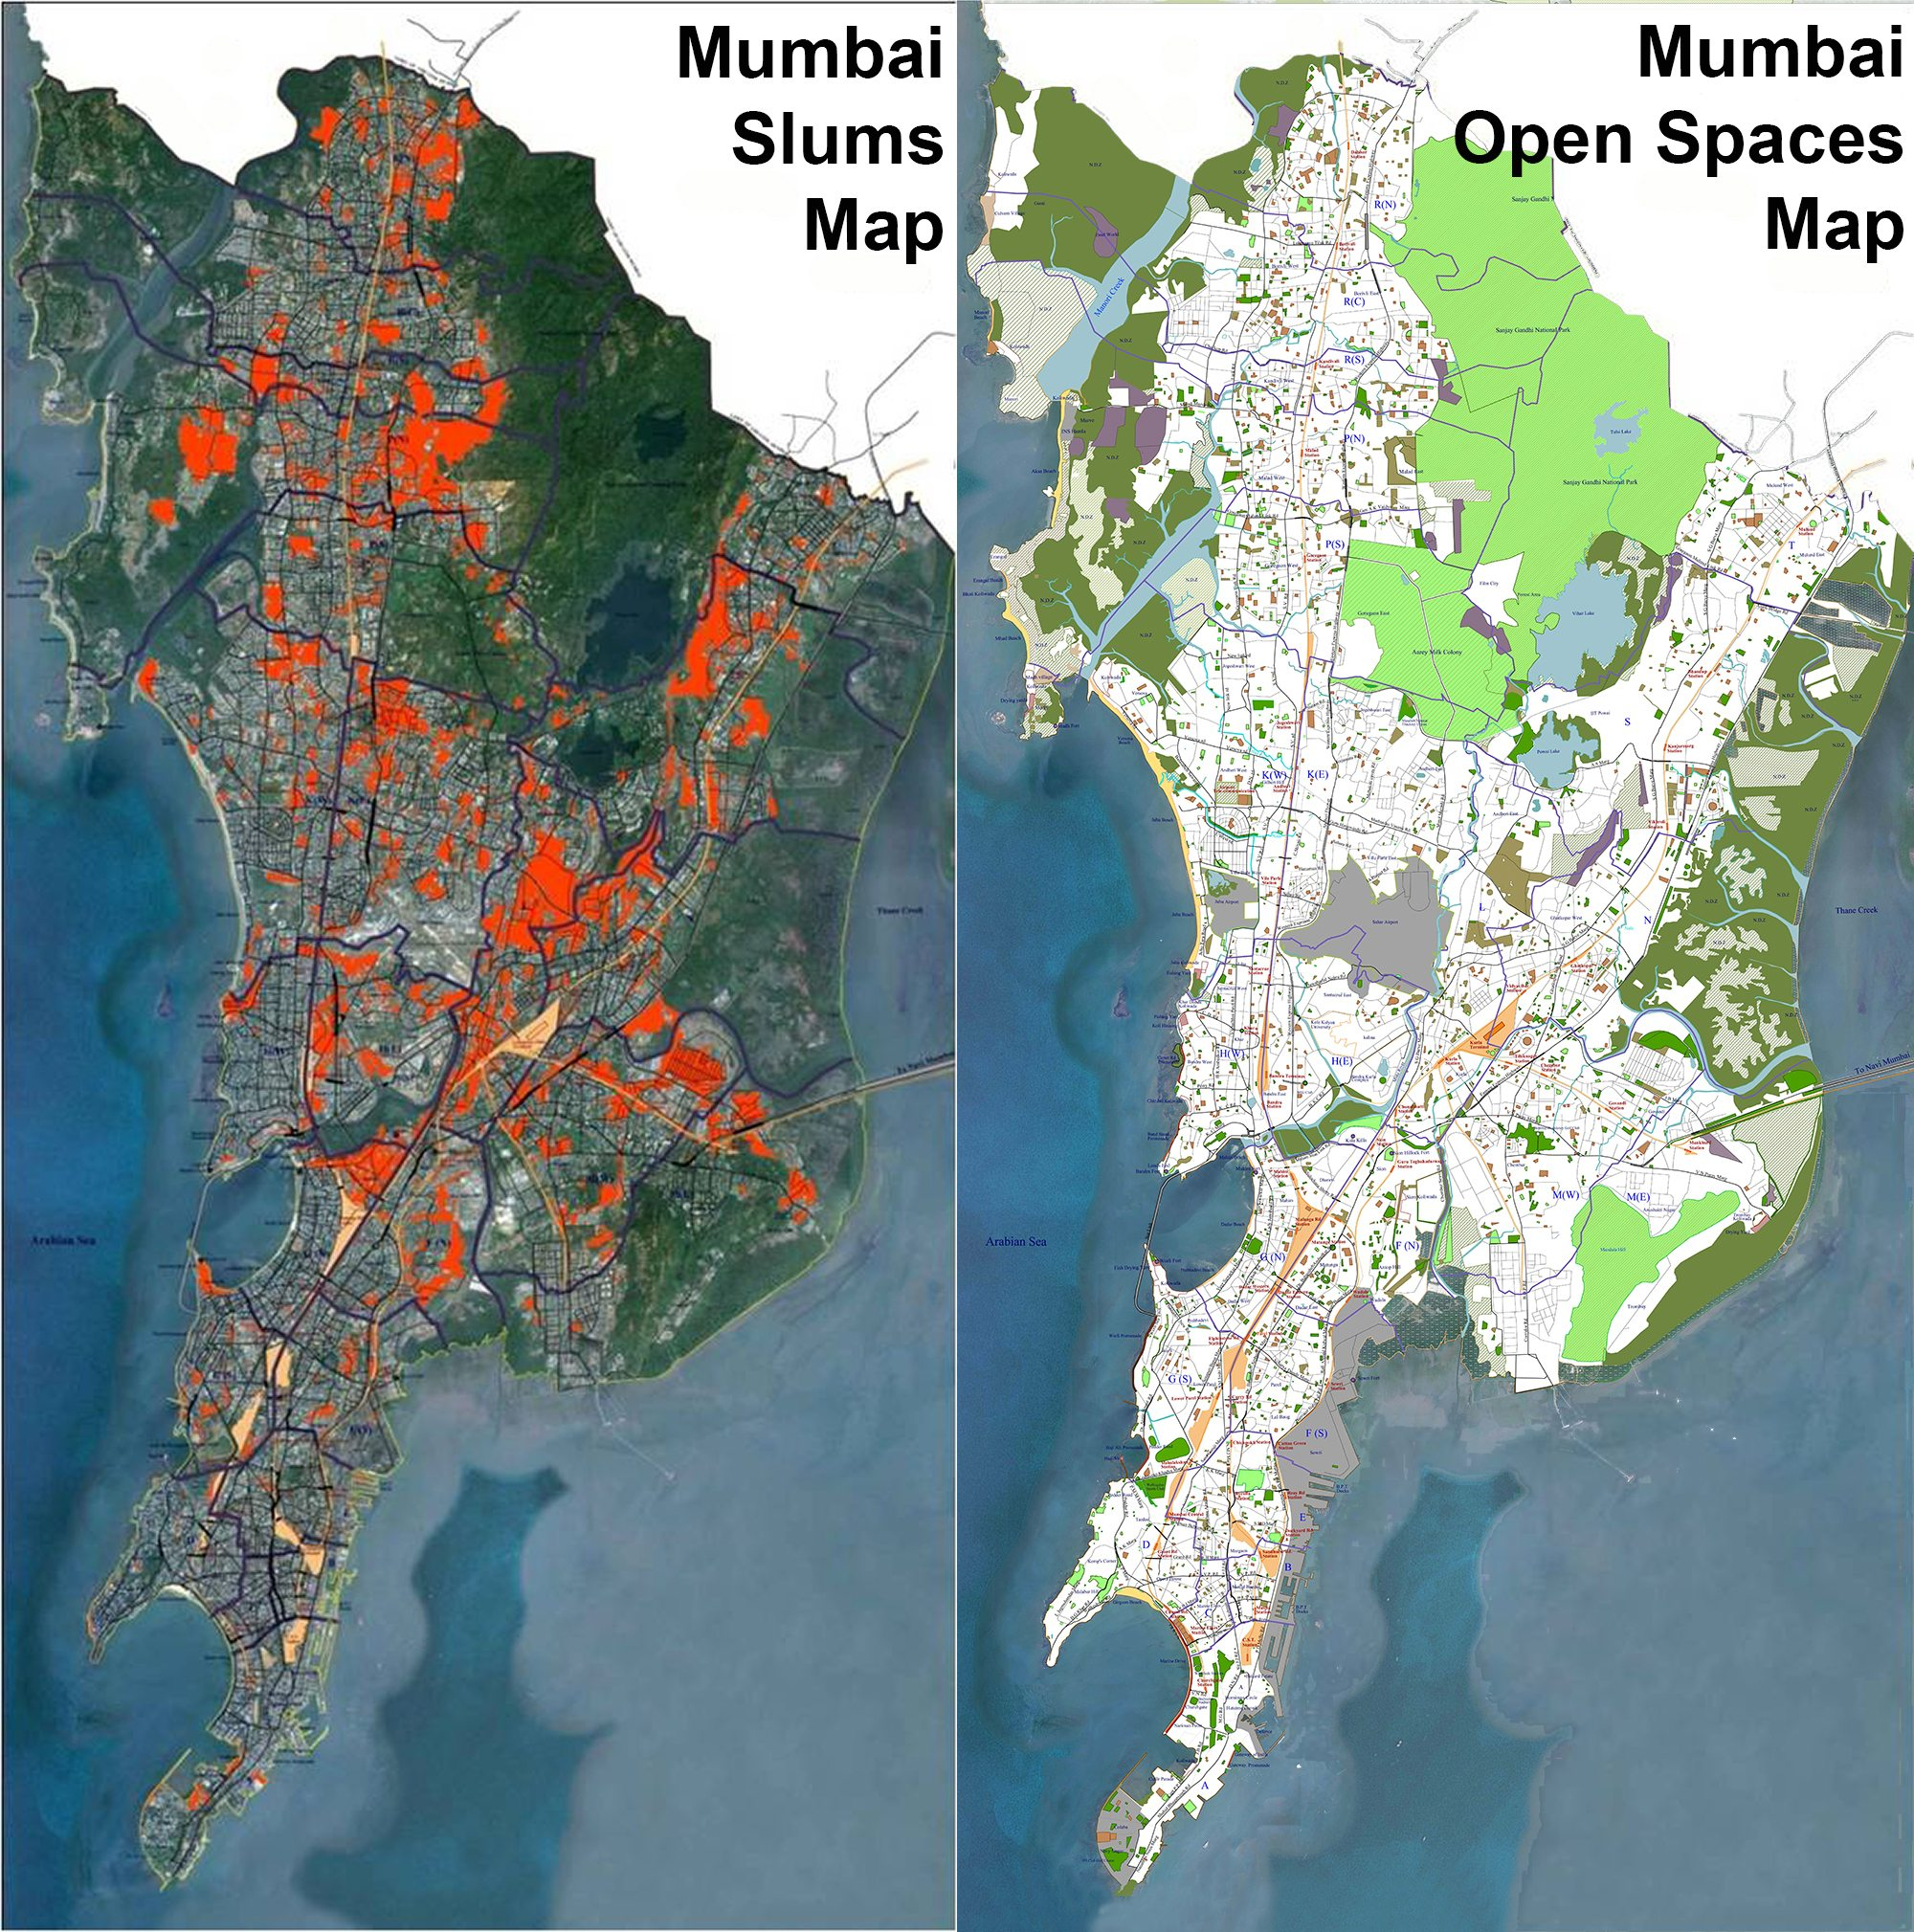 CAPTION: Left: Slums & open spaces mapping (in red) carried out by Nivara Hakk and this author in the year 2012, is the first comprehensive viewing of the slums occupied areas. Right: the vast extent of natural areas (in green) of Mumbai, bringing out facts that expose many myths and bluffs. Both these efforts brought critical data to public view.